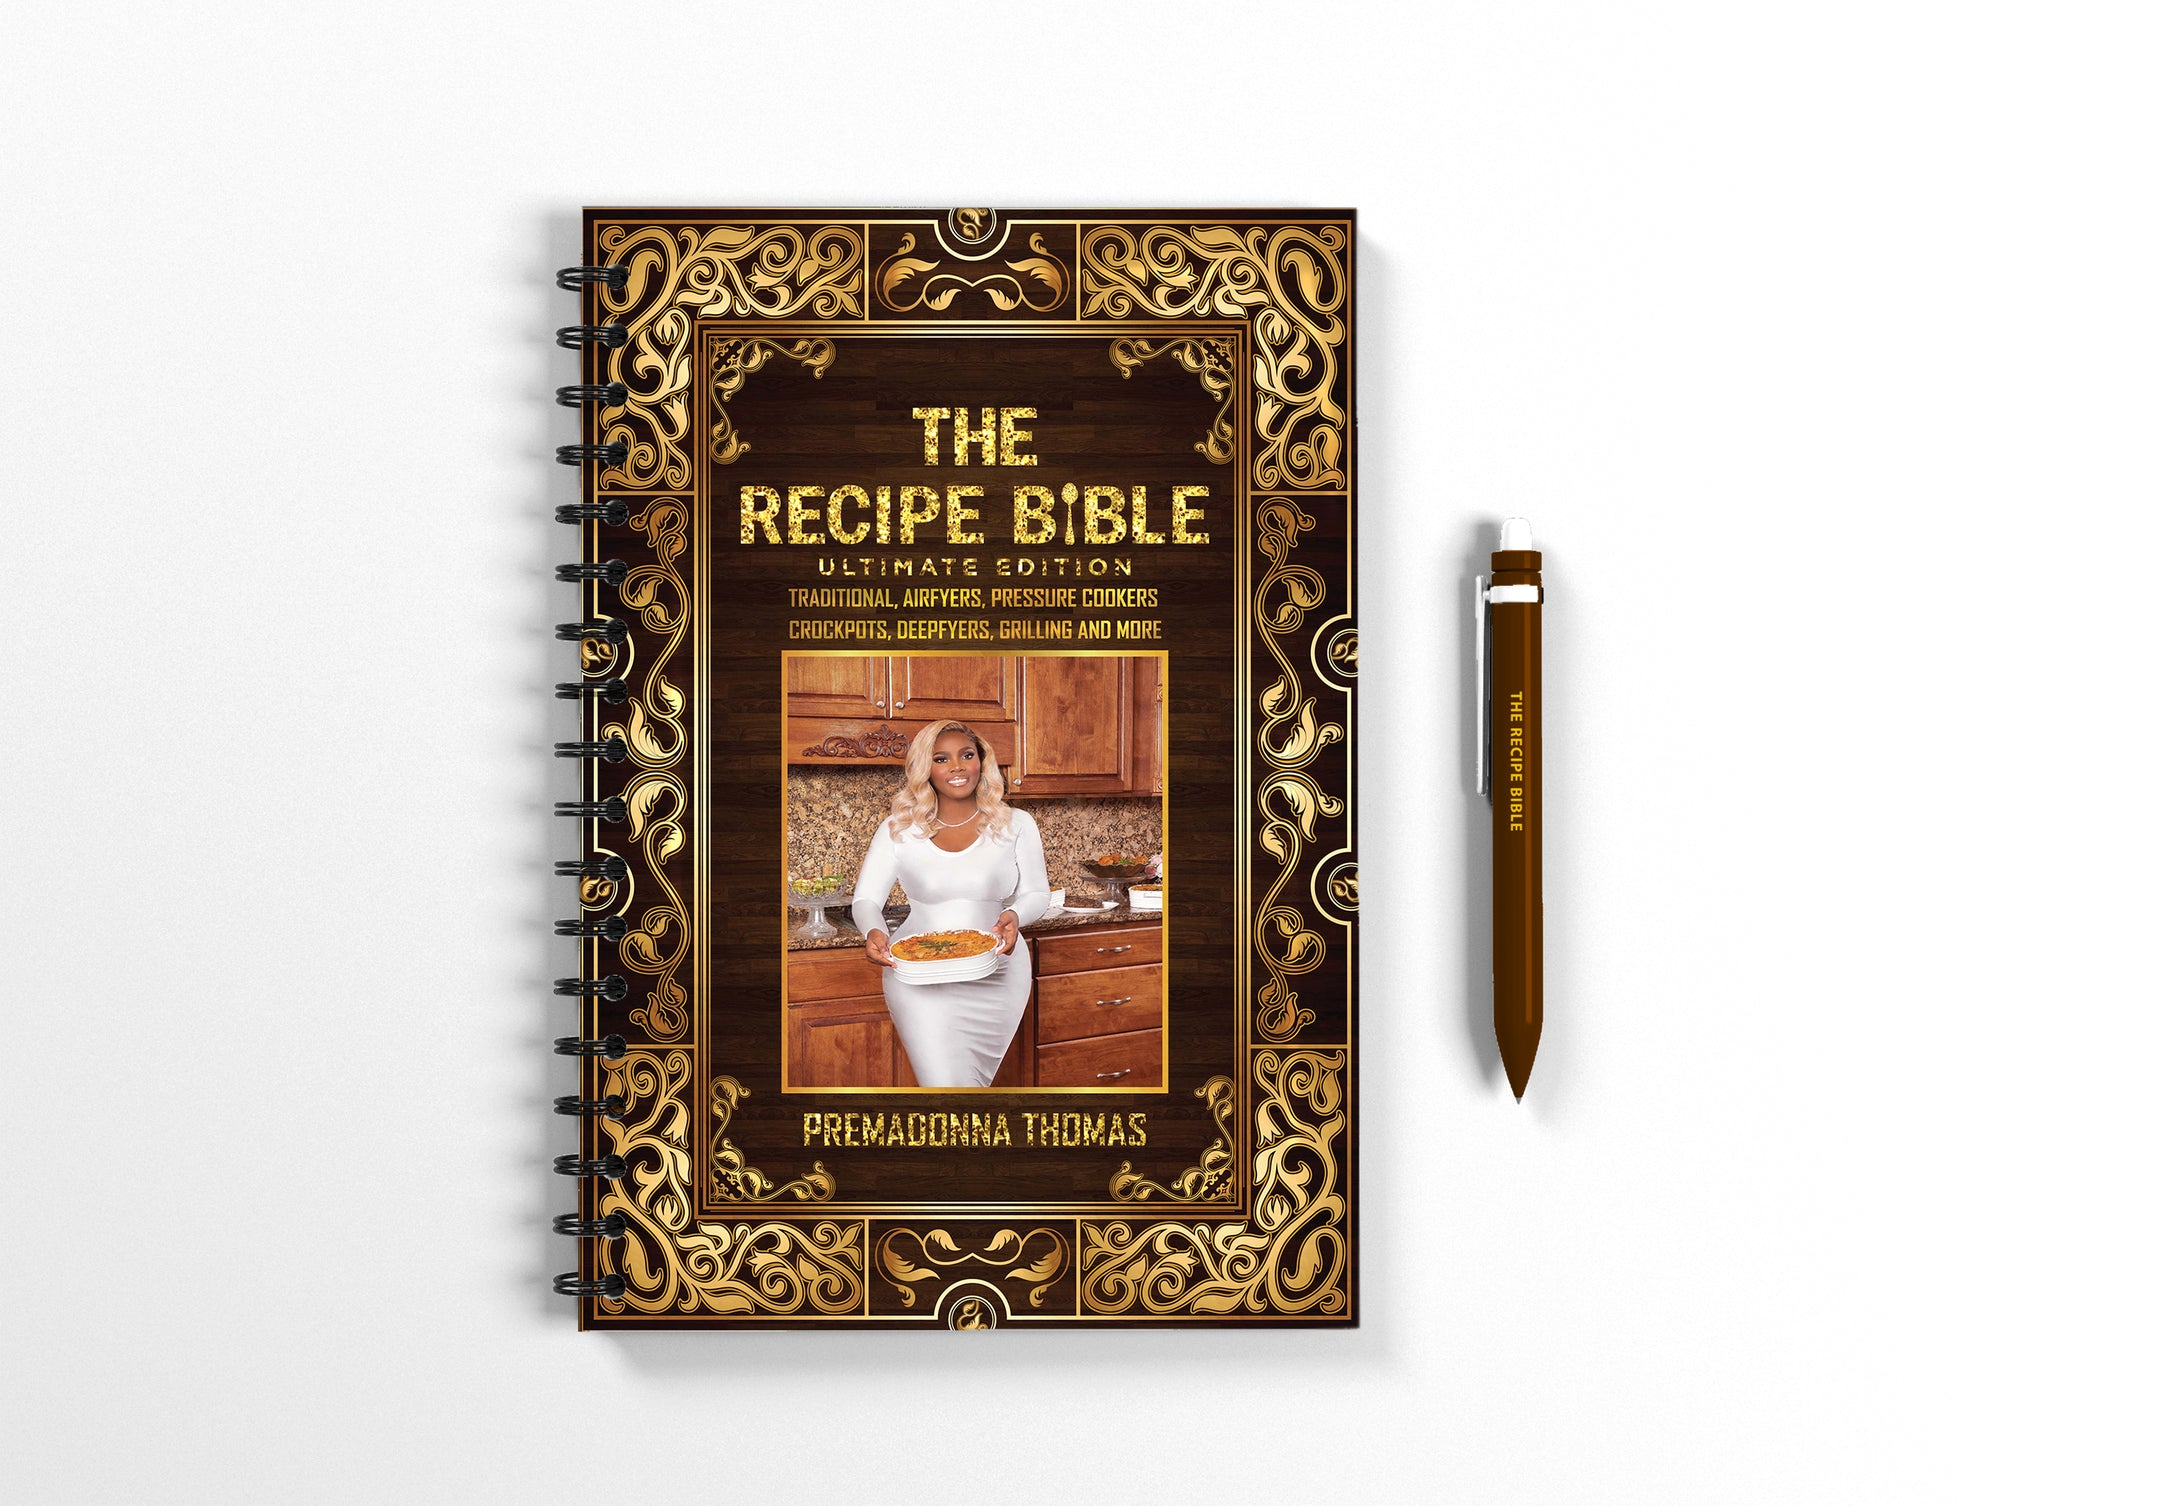 The Recipe Bible ULTIMATE EDITION